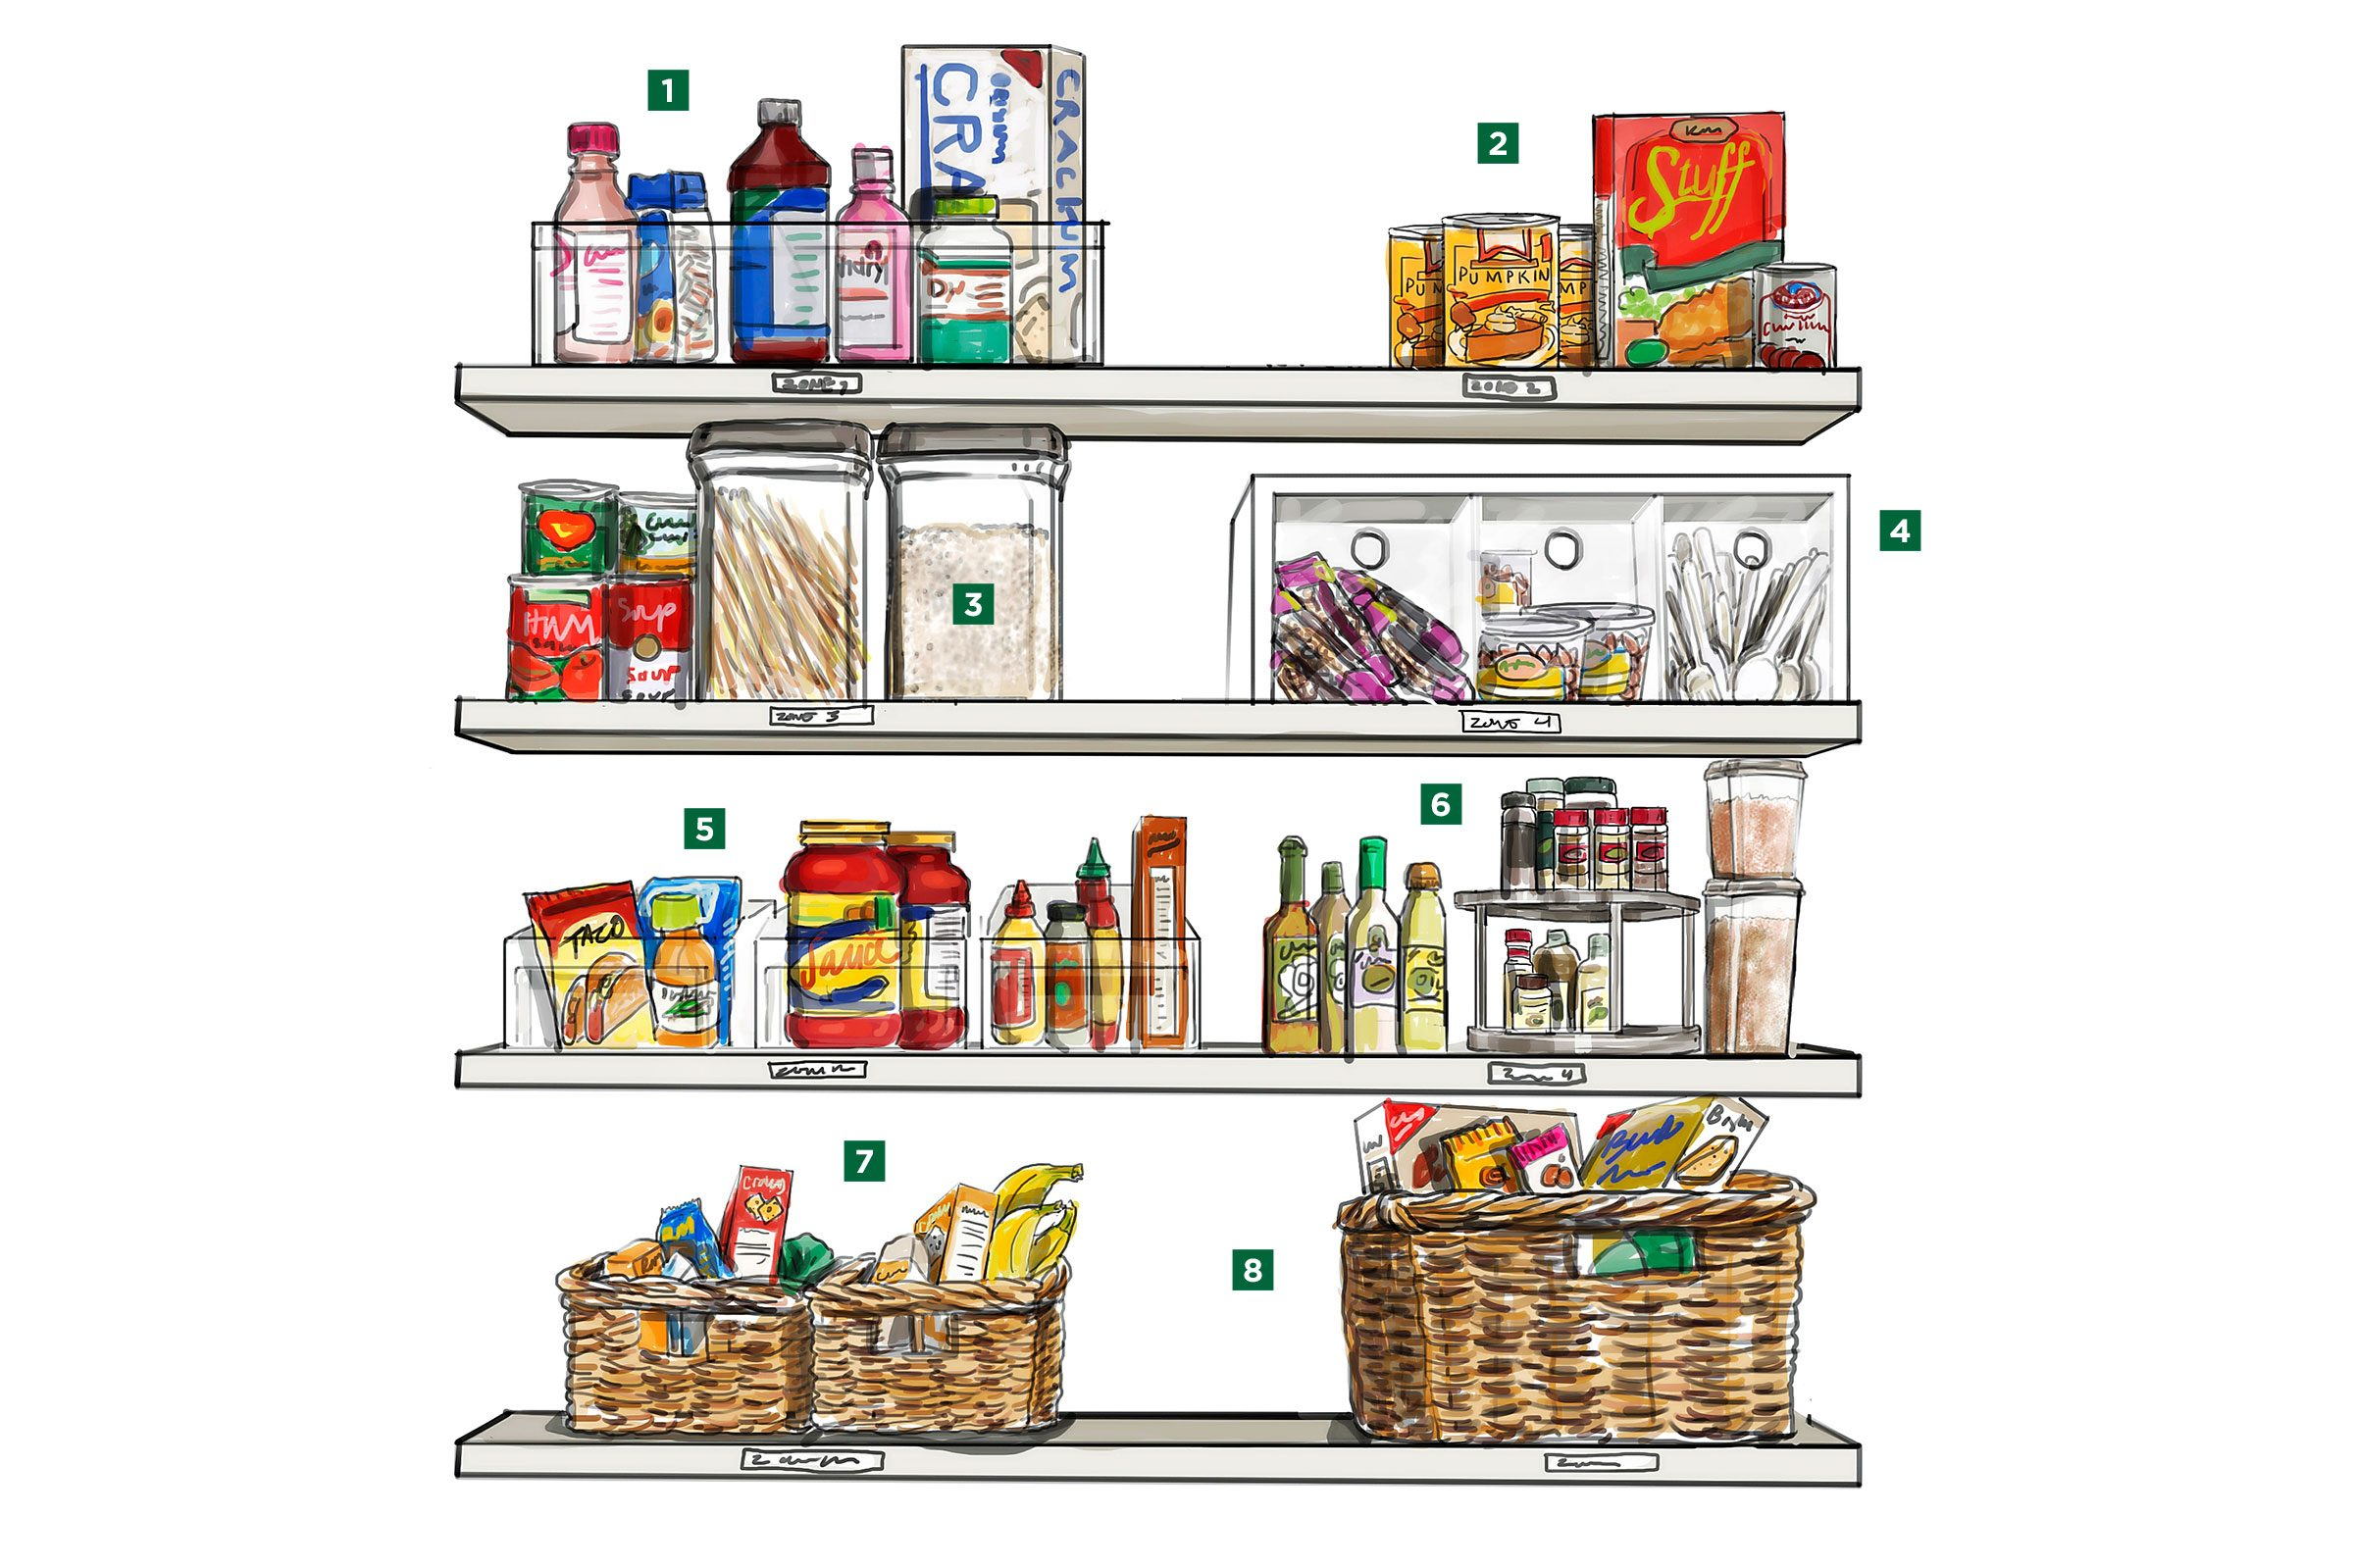 Organize Your Pantry: 8 Pantry Zones to Have | Reader's Digest